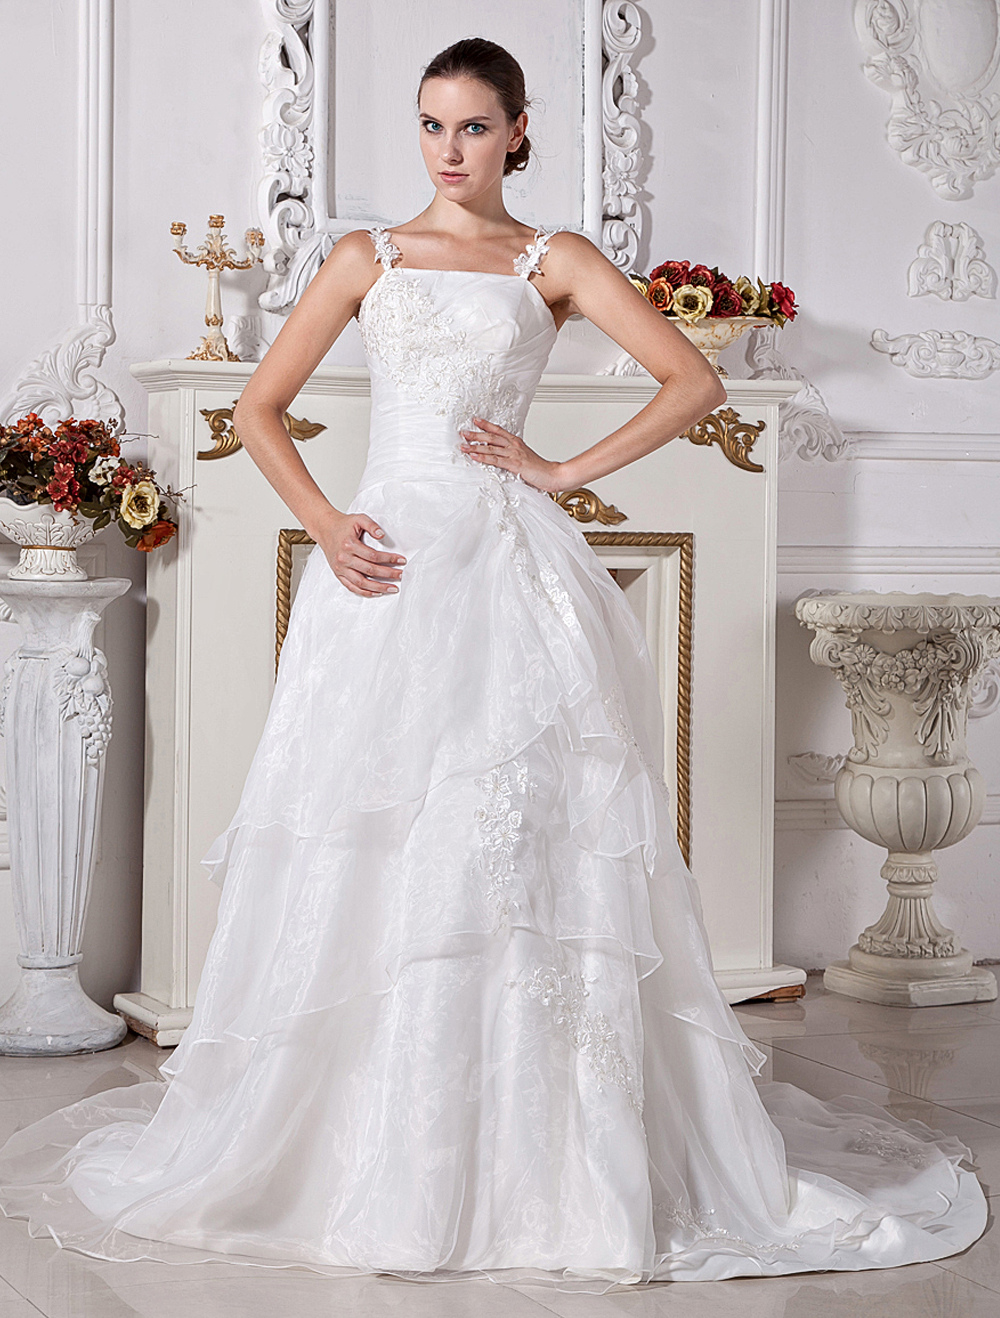 White Wedding Dresses Lace Applique Straps Bridal Dress Beading Organza Tiered Court Train Wedding Gown